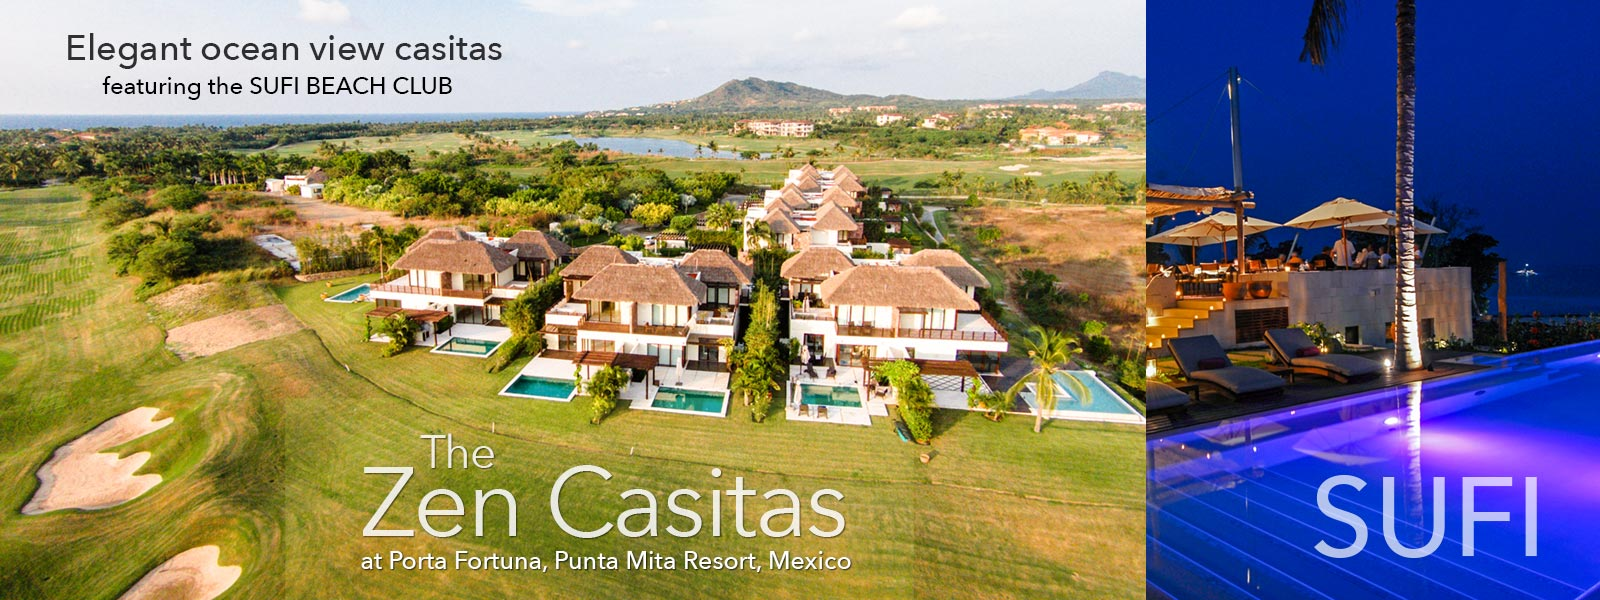 porta fortuna - luxury punta mita real estate